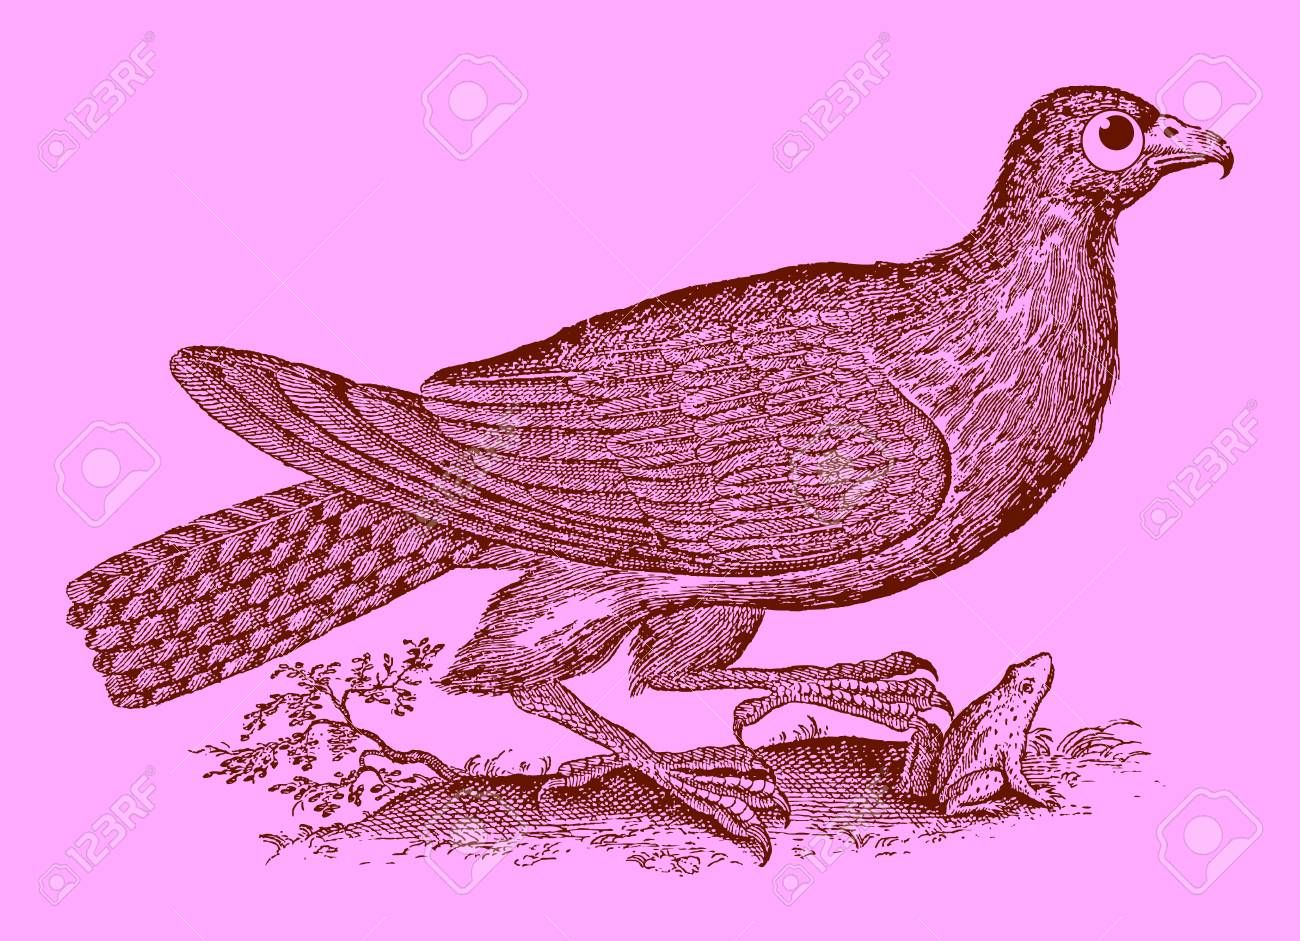 Cute predator buzzard or hawk catching a frog or toad Illustration after a historic woodcut engraving from the 17th century Easy editable in layers